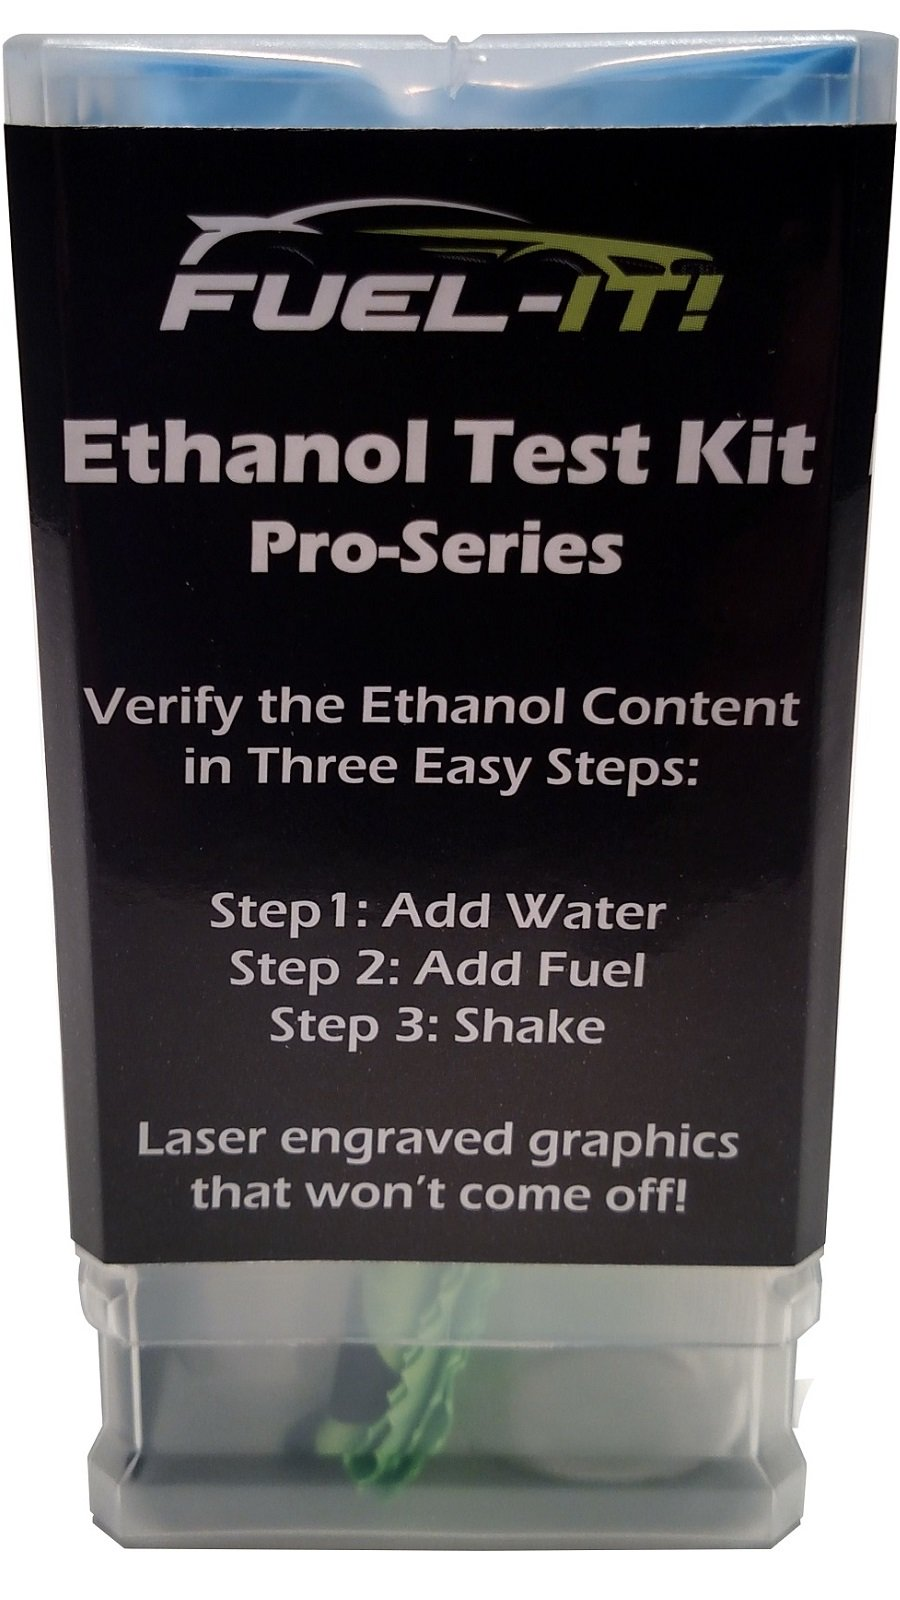 Pro-Series Ethanol Test Kit with 2 Reusable Testers for Ethanol, E85, Gasoline, Race Gas, Ethanol-Free Fuel Tester